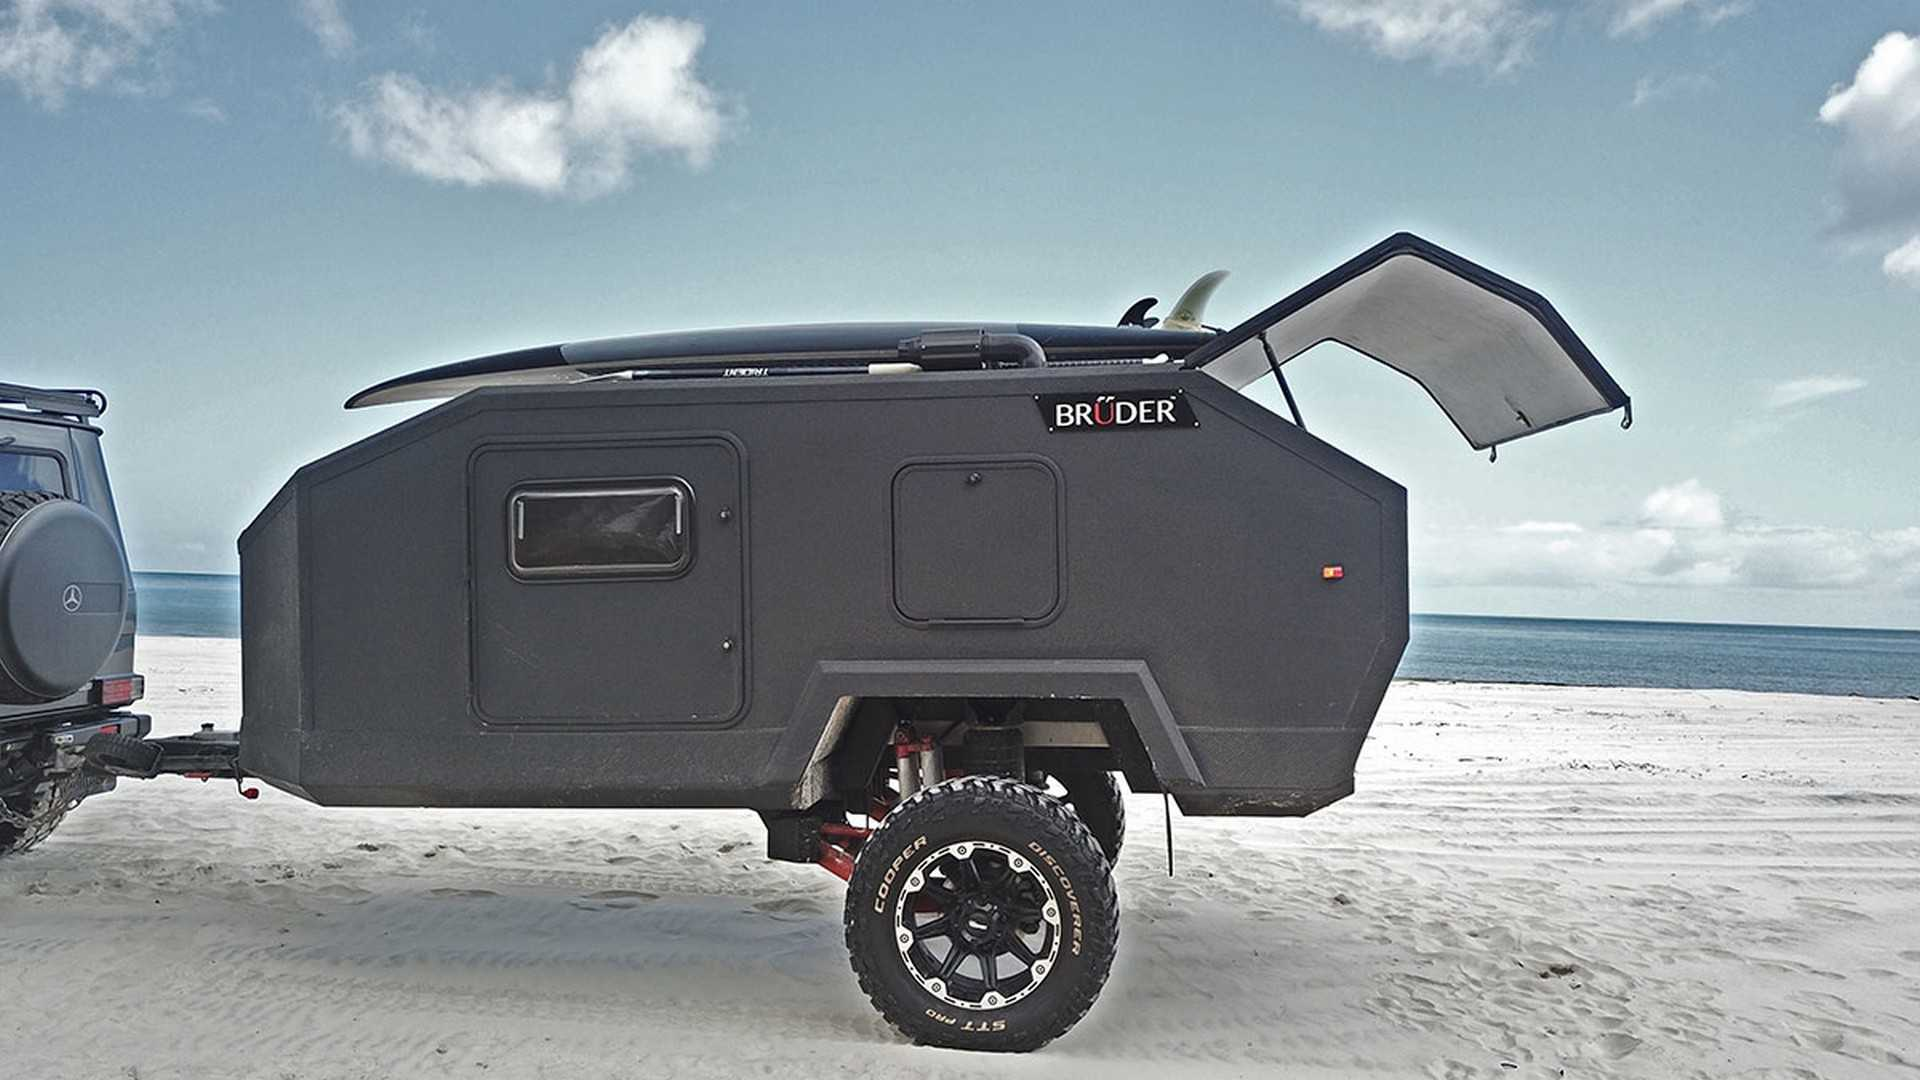 Outdoor Anhänger Bruder Exp 4 Trailer Is The Camper You Could Actually Afford